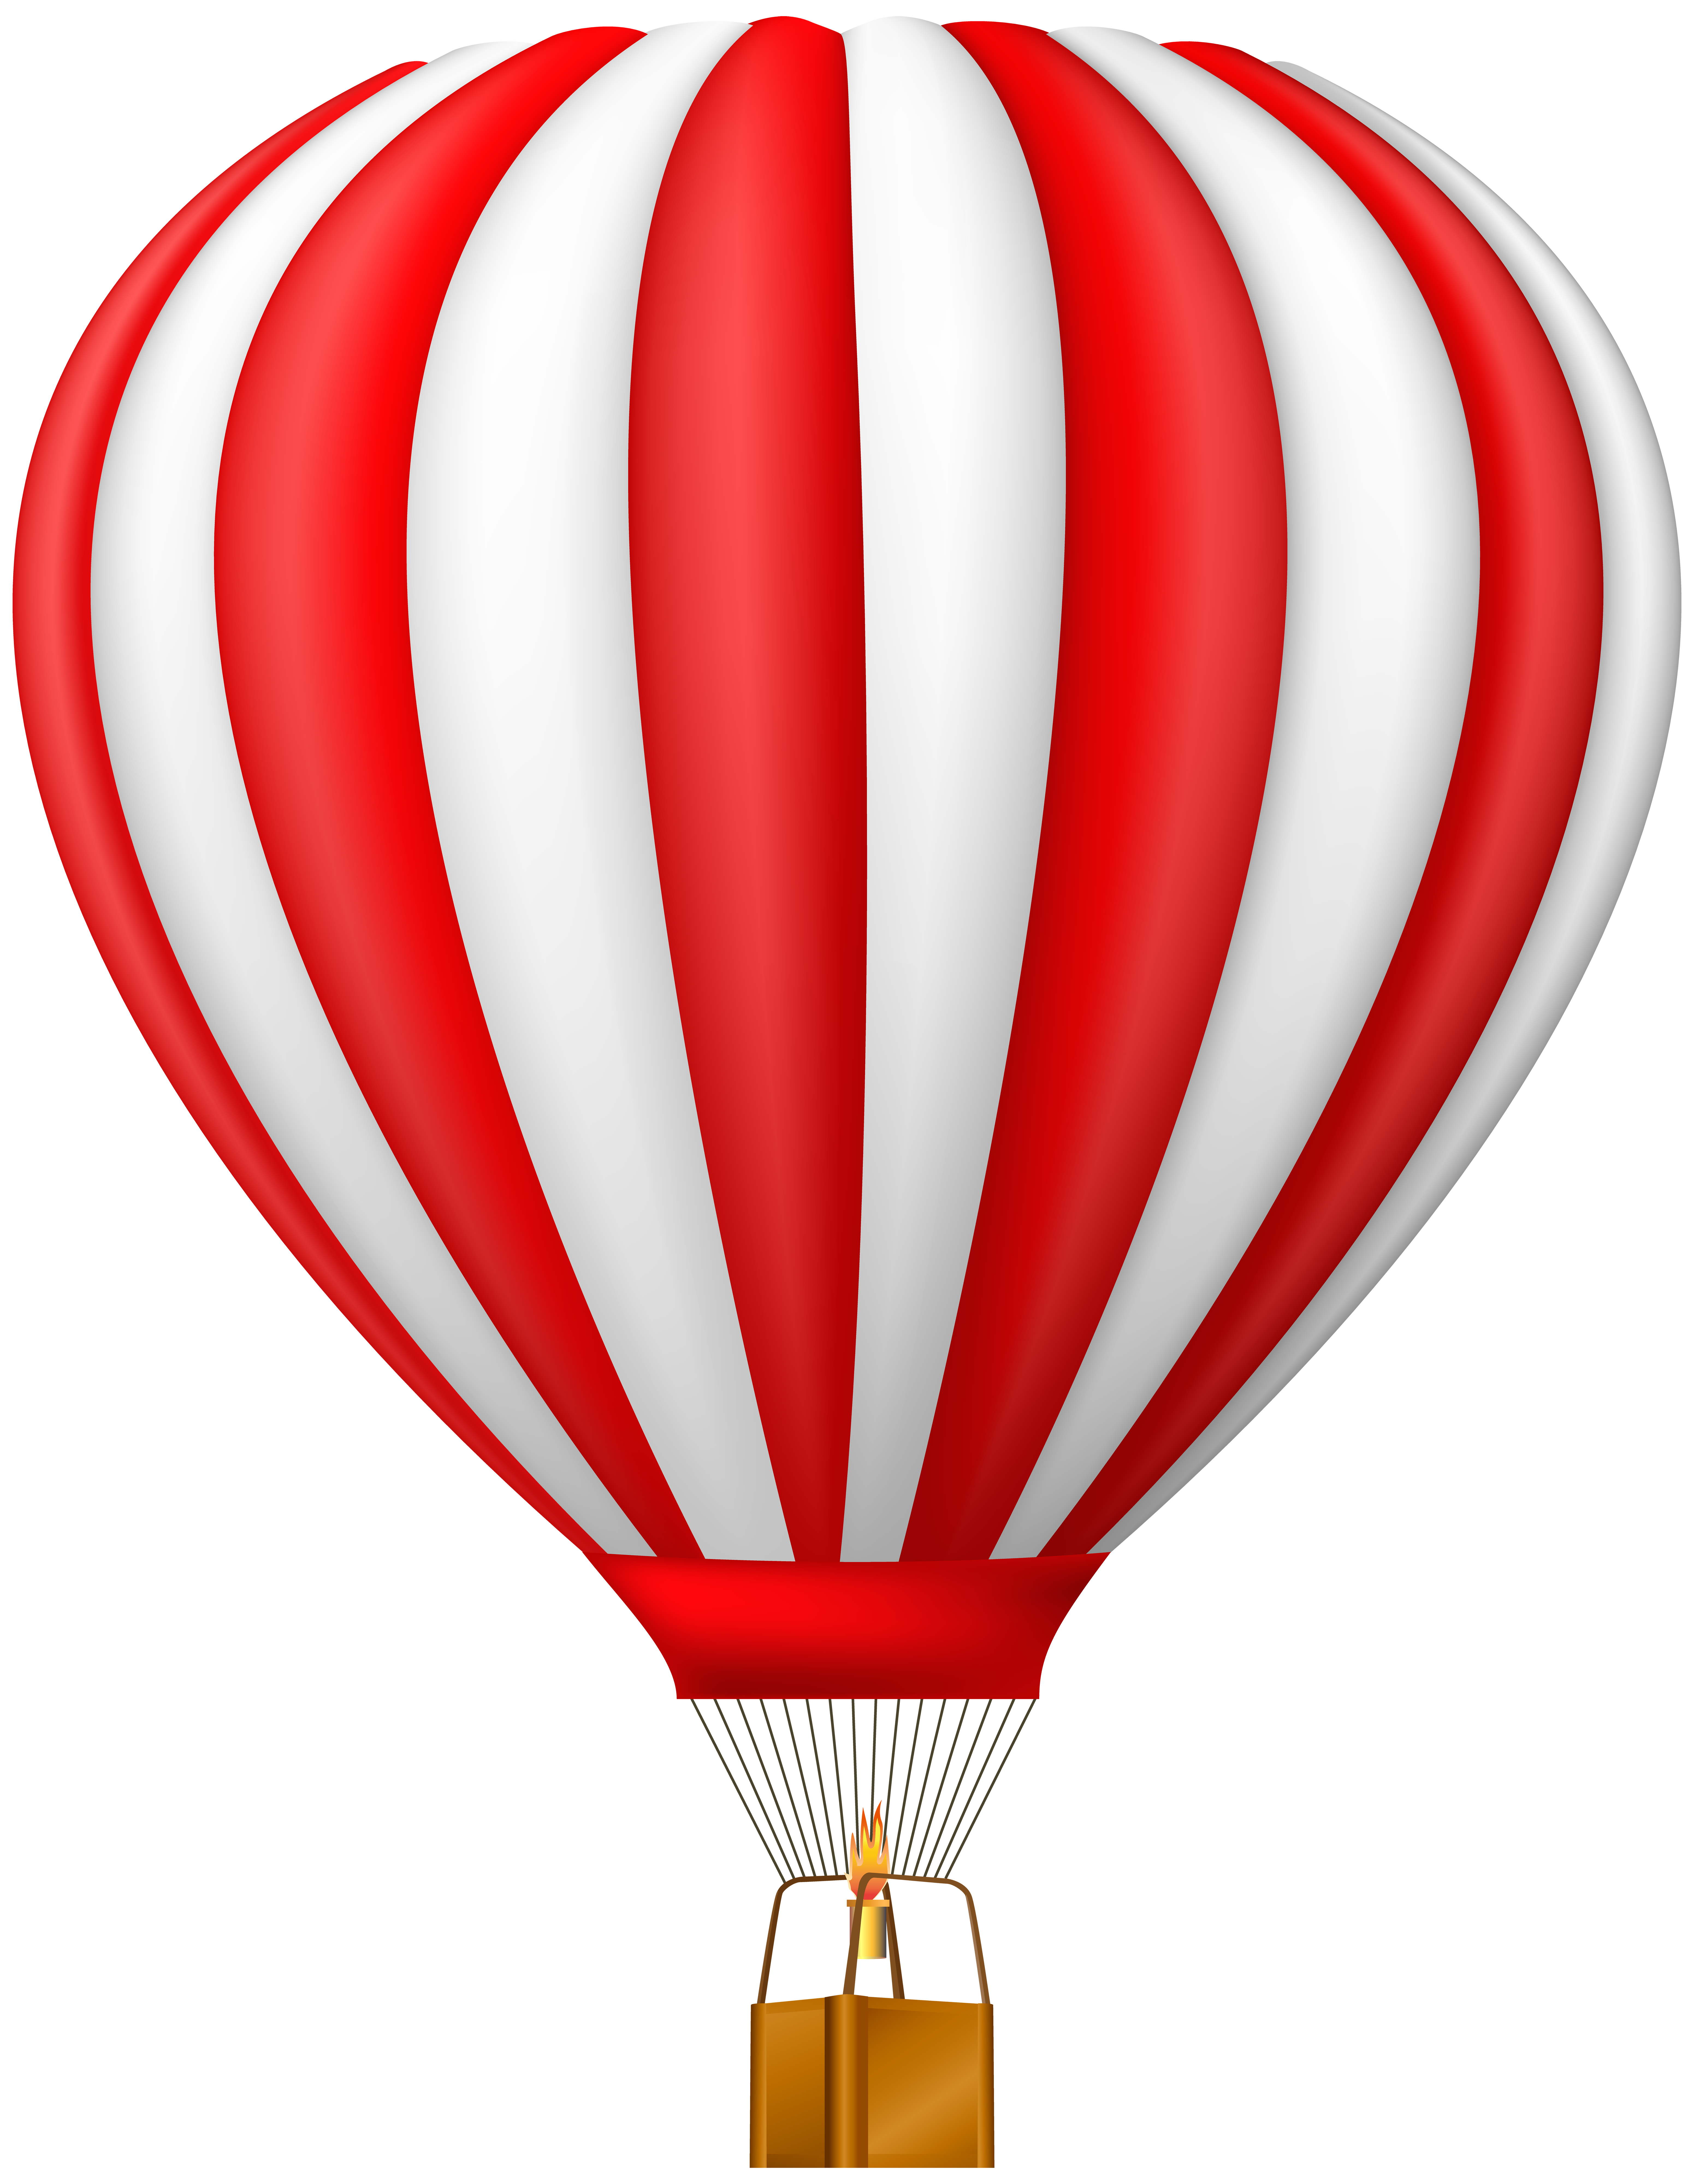 Hot air balloon clip art png. Red transparent gallery yopriceville